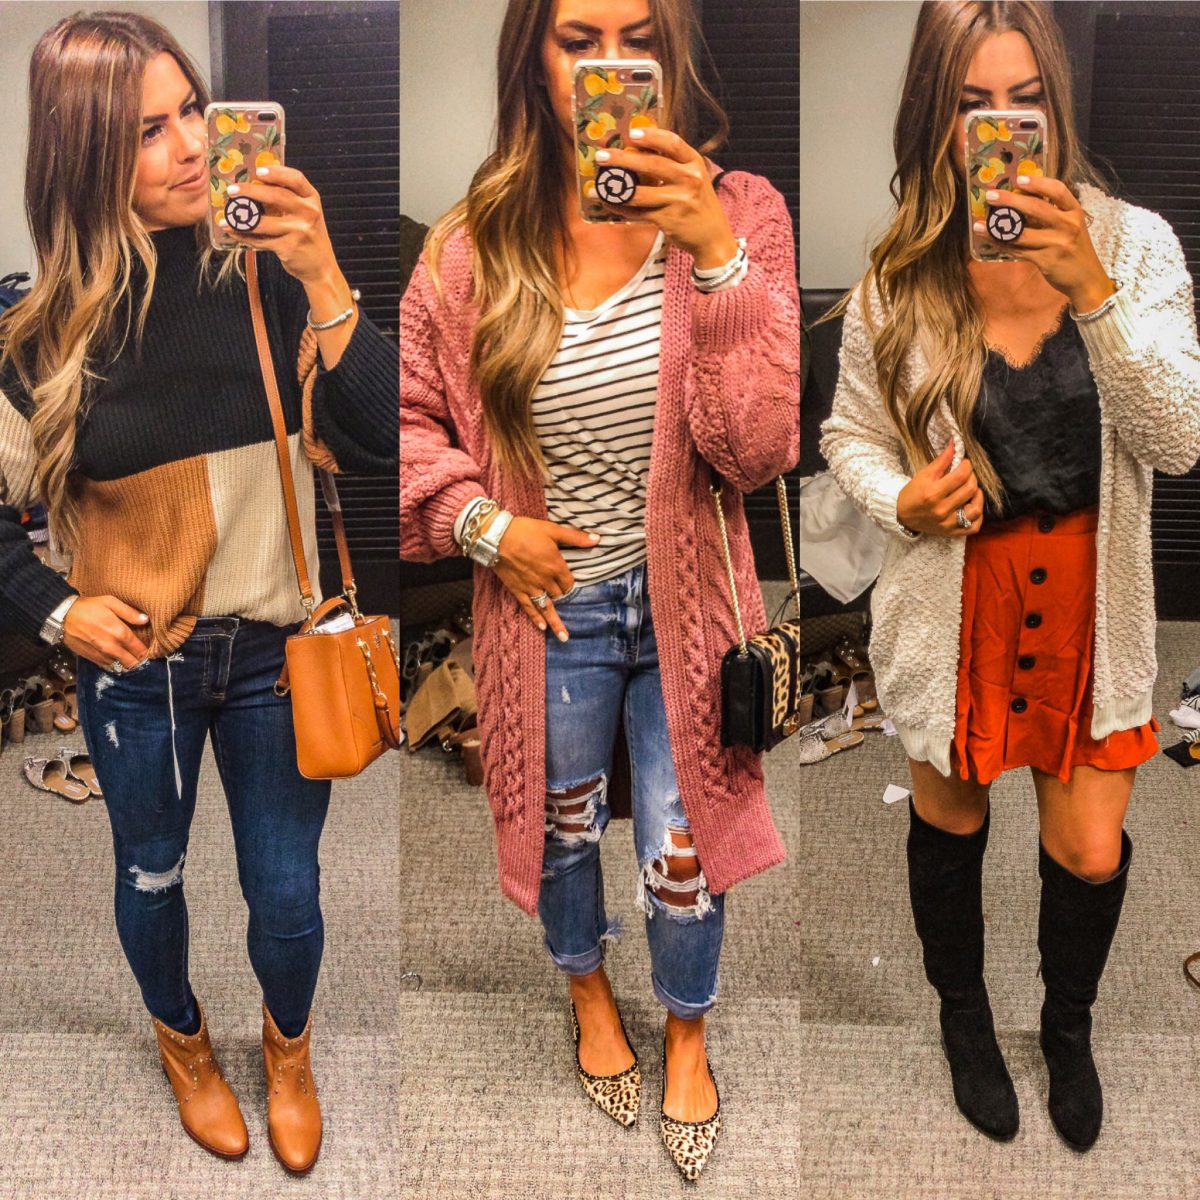 best of the nordstrom anniversary sale 2018 what to shop in the nordstrom anniversary sale 2018 shop the nordstrom anniversary sale best items in the nordstrom anniversary sale fall sweaters nordstrom sale 2018 nsale 2018 nordstrom sale 2018